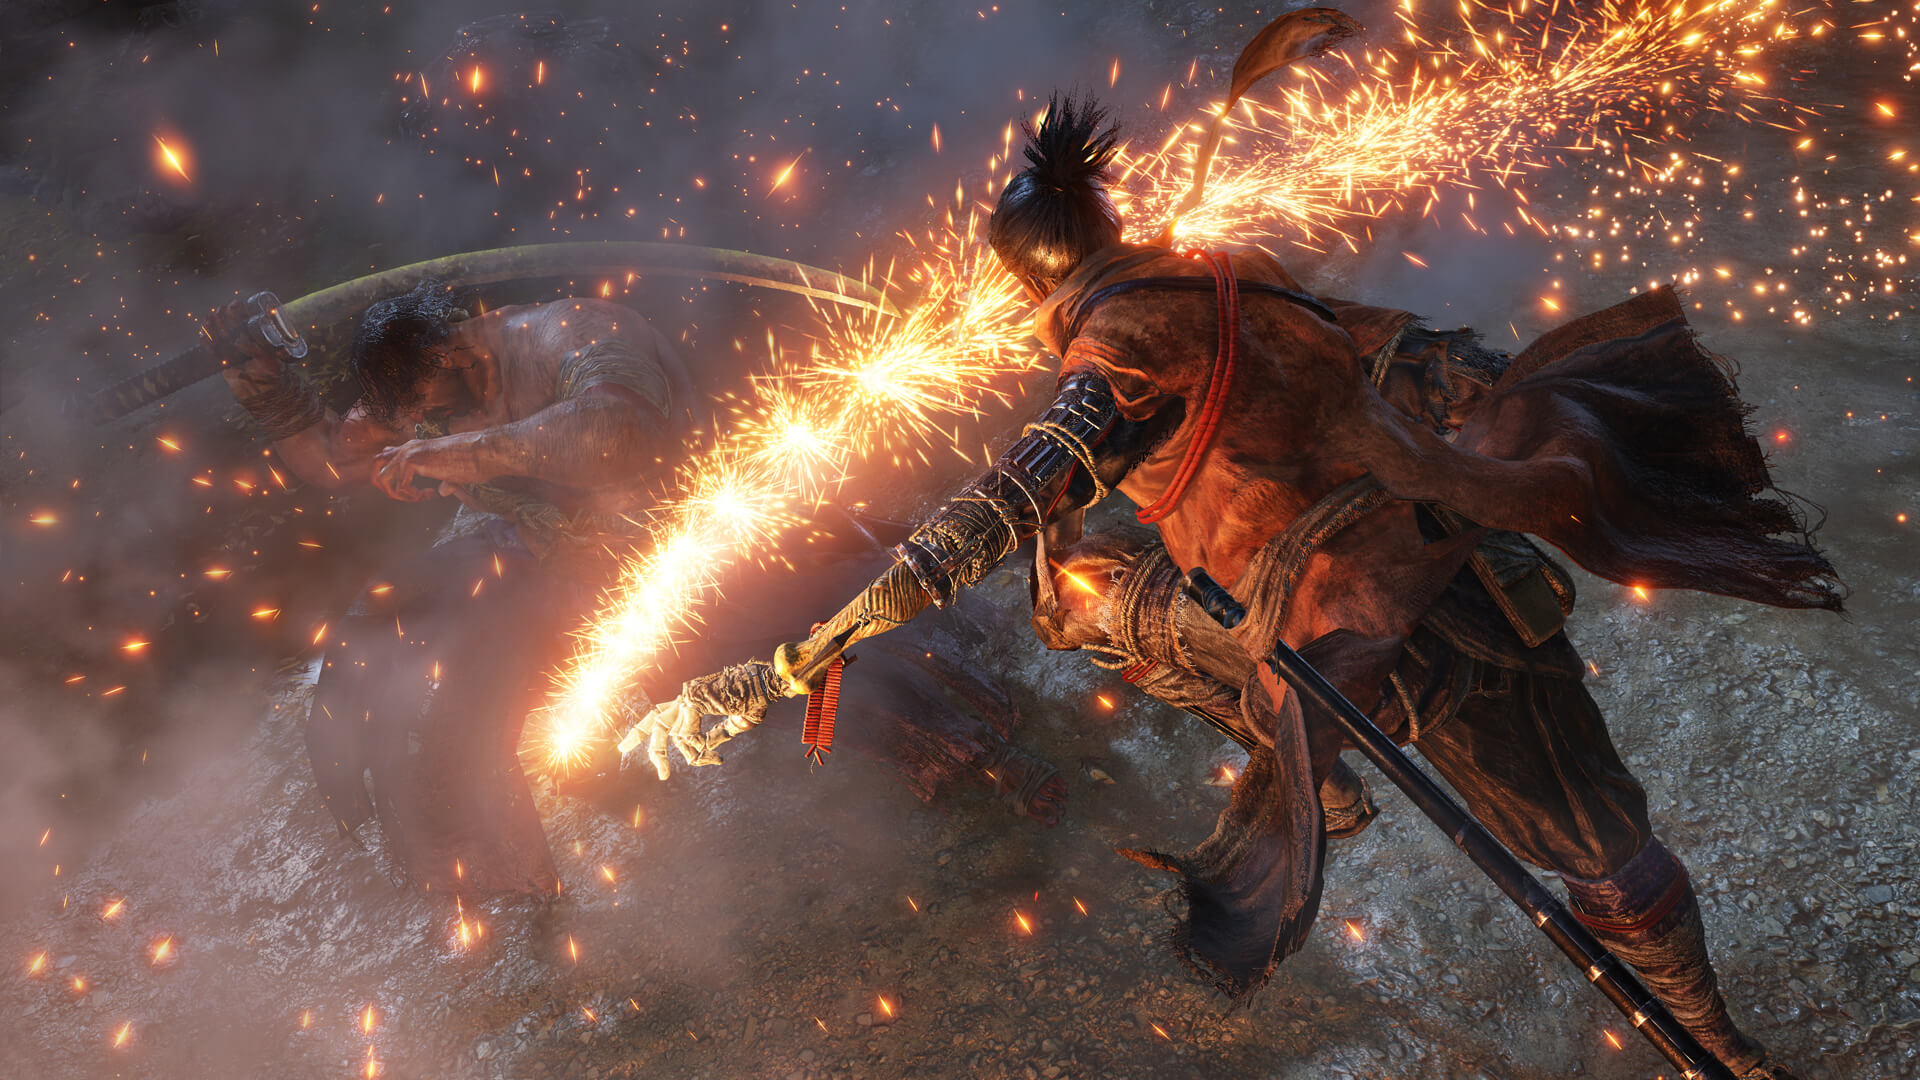 Sekiro: Shadows Die Twice fire arm